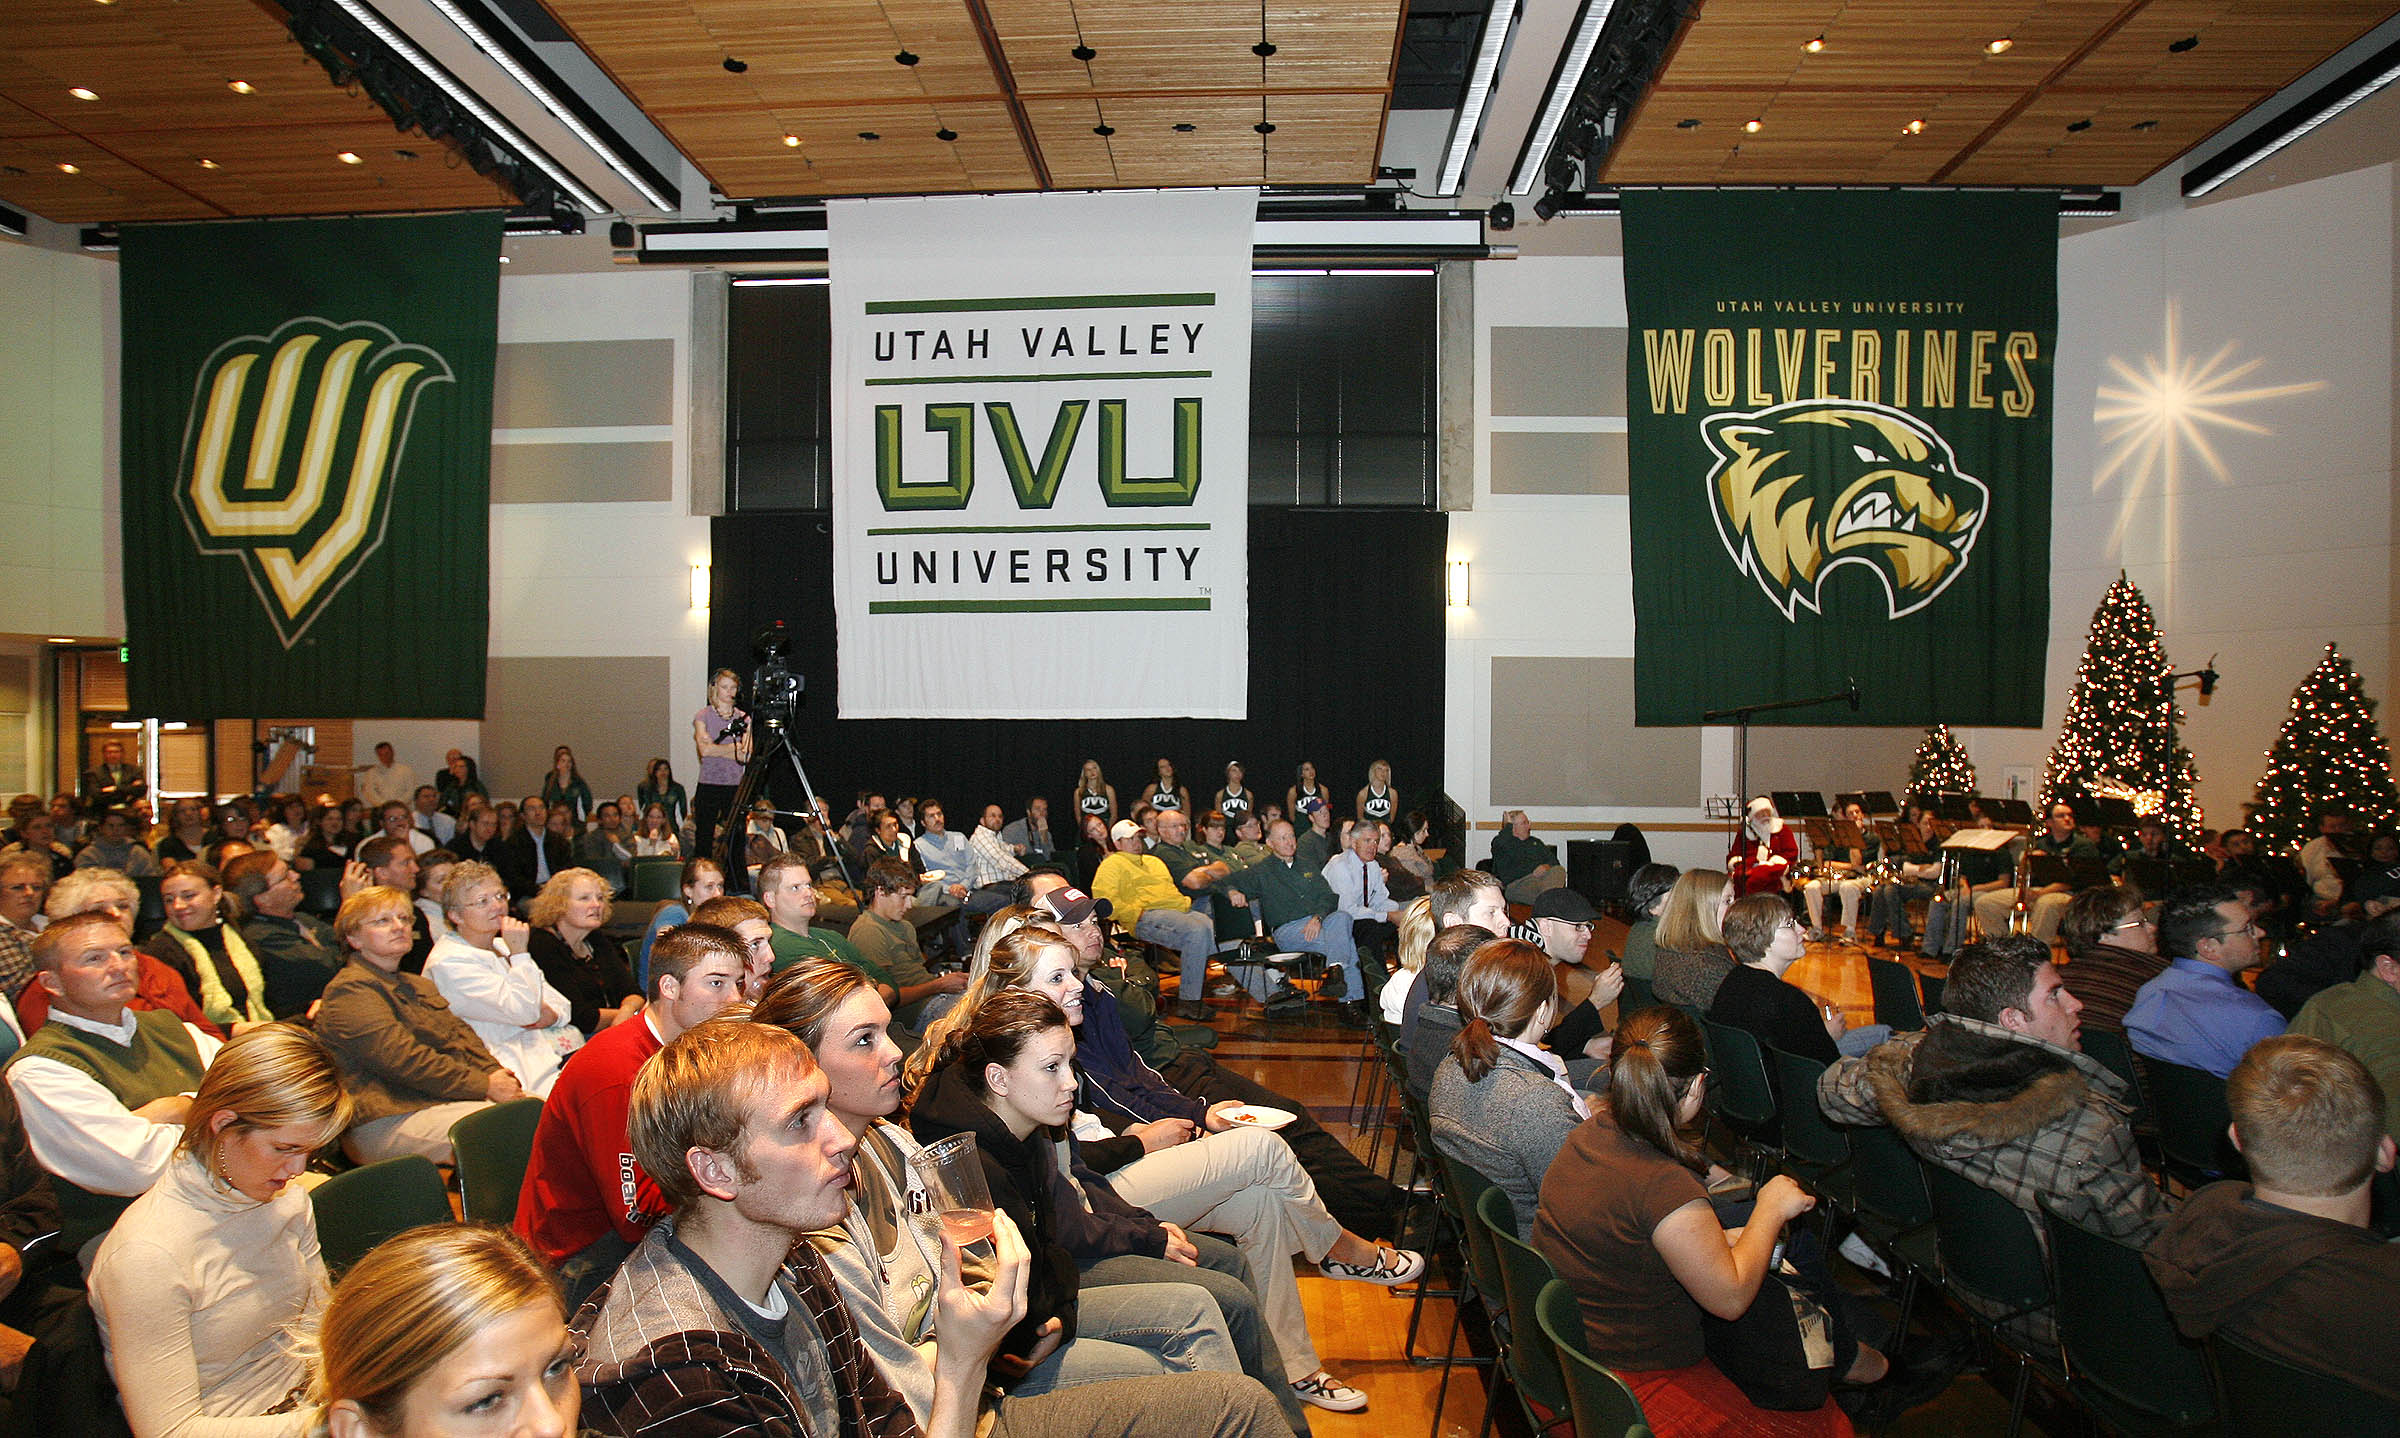 Banners of the new UVU logos hang from the ceiling at Utah Valley University in 2007.